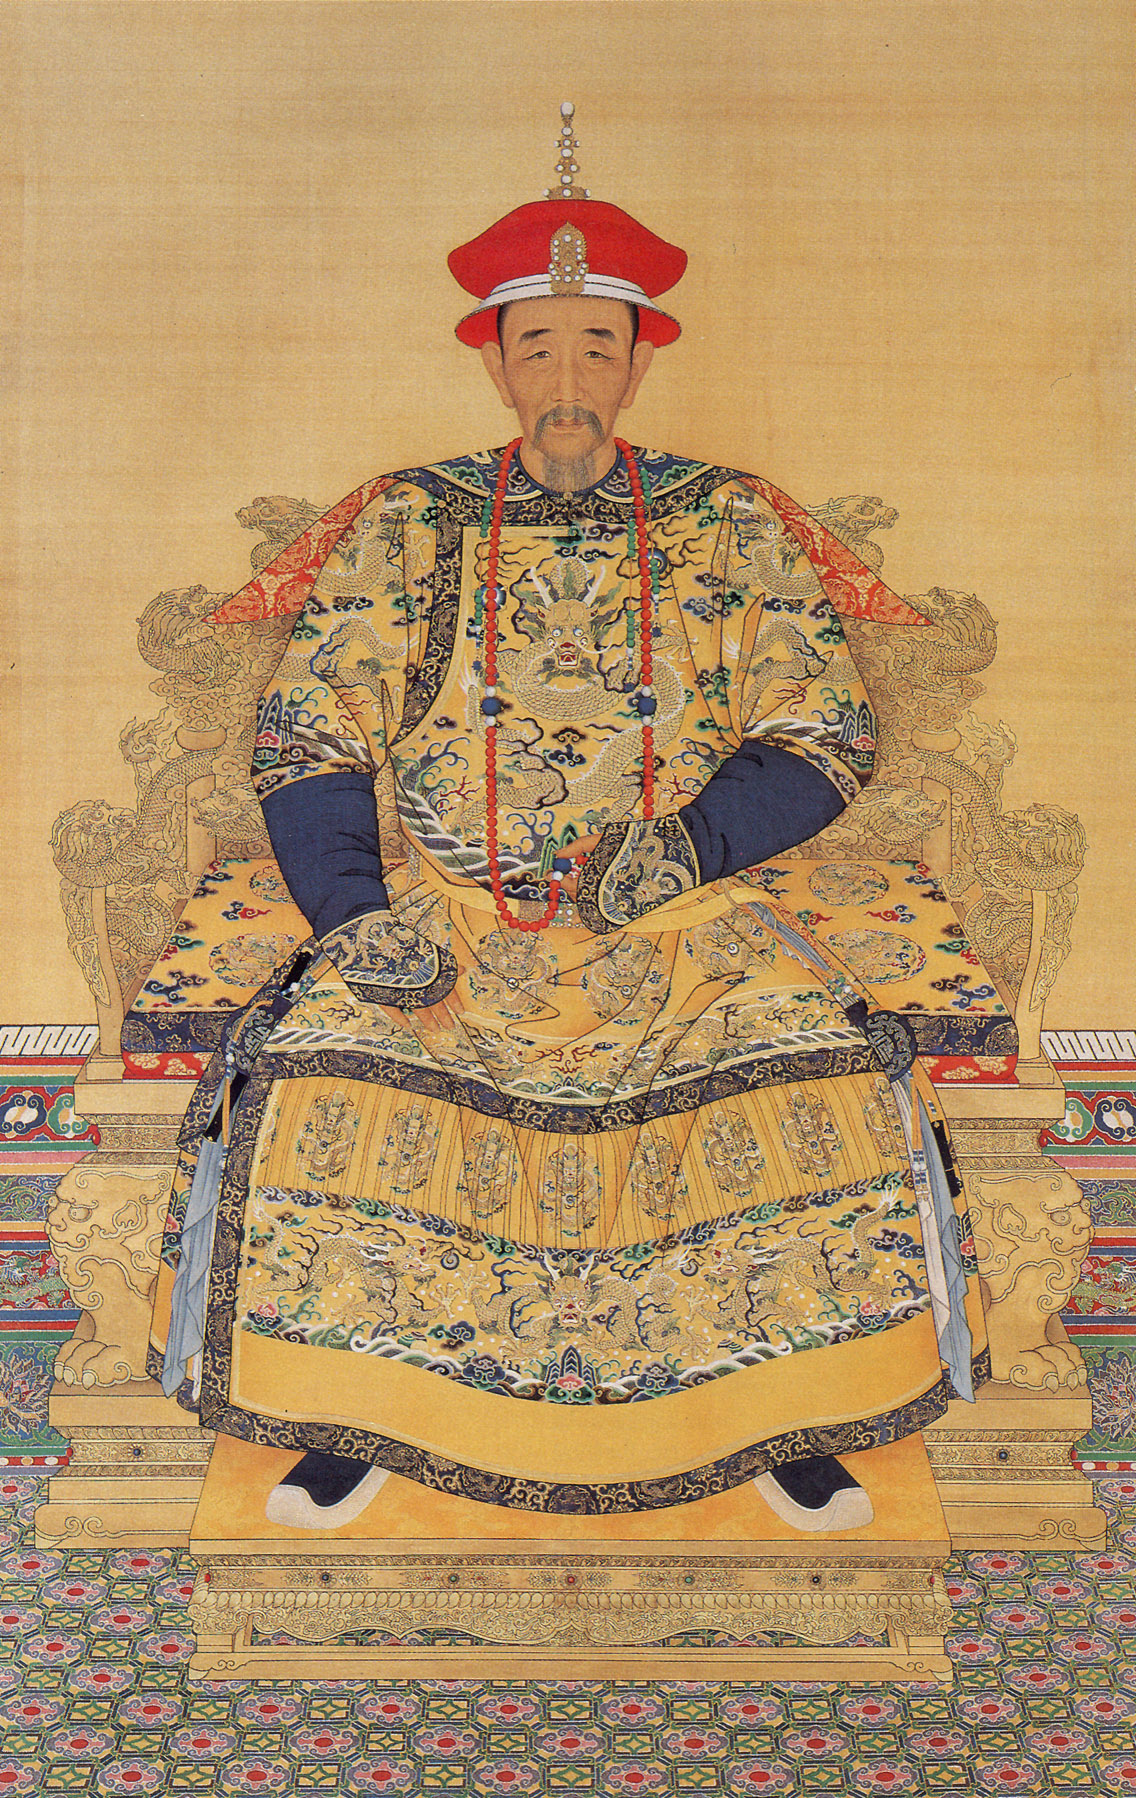 Emperor Kangxi of the Qing Dynasty. (Public Domain)